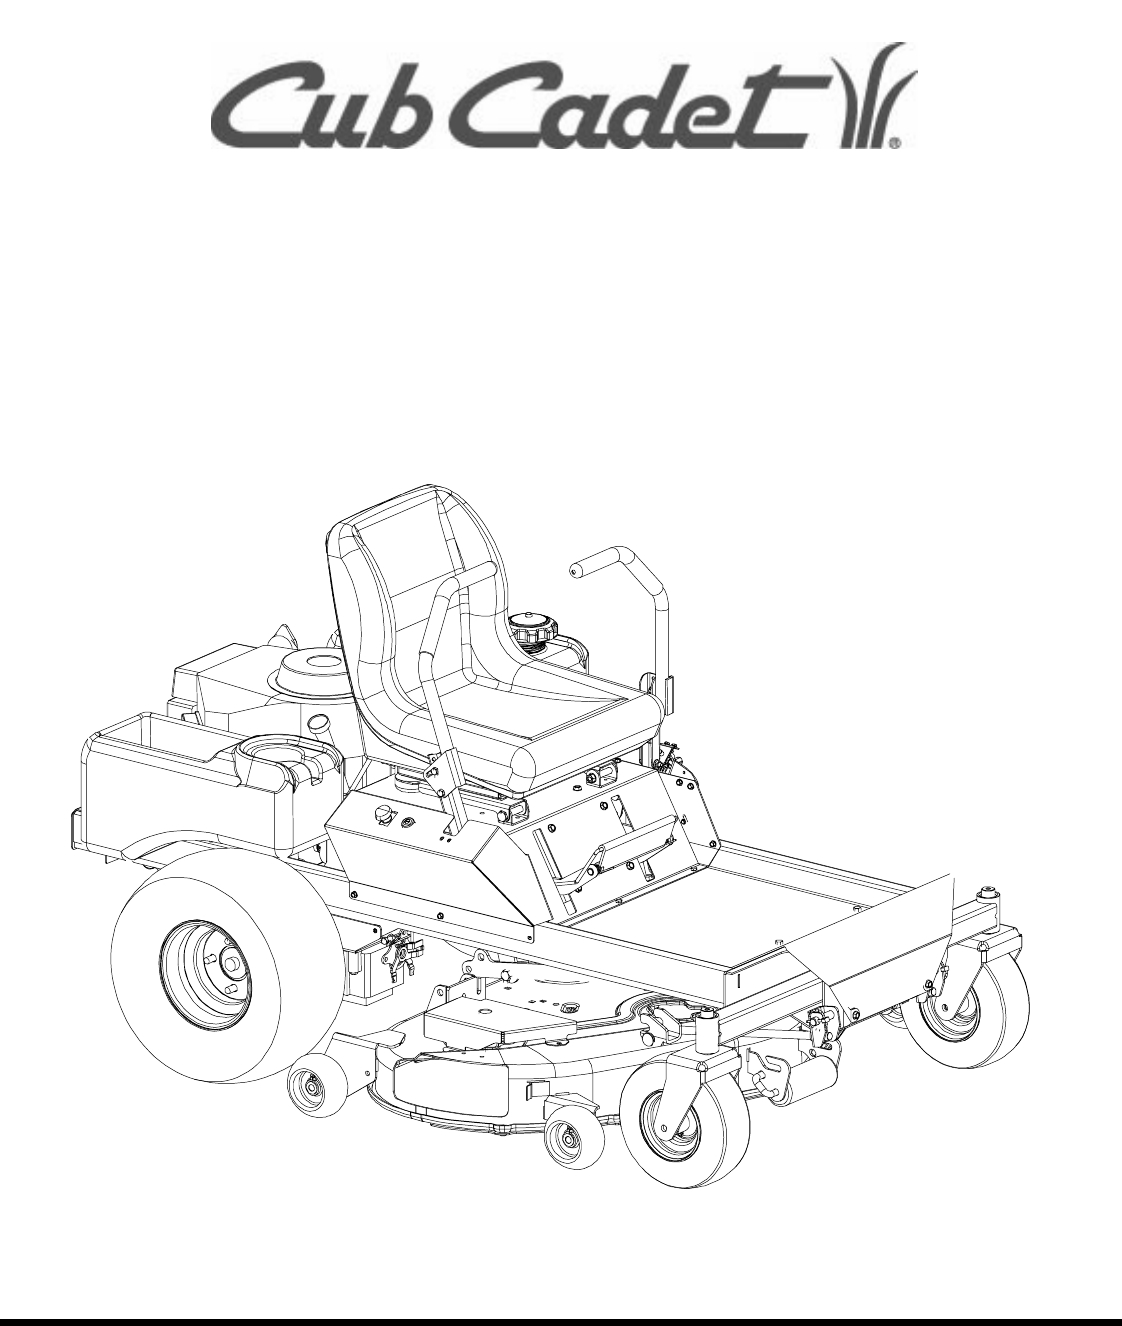 Cub Cadet Rzt 50 Parts Diagram Automotive Parts Diagram